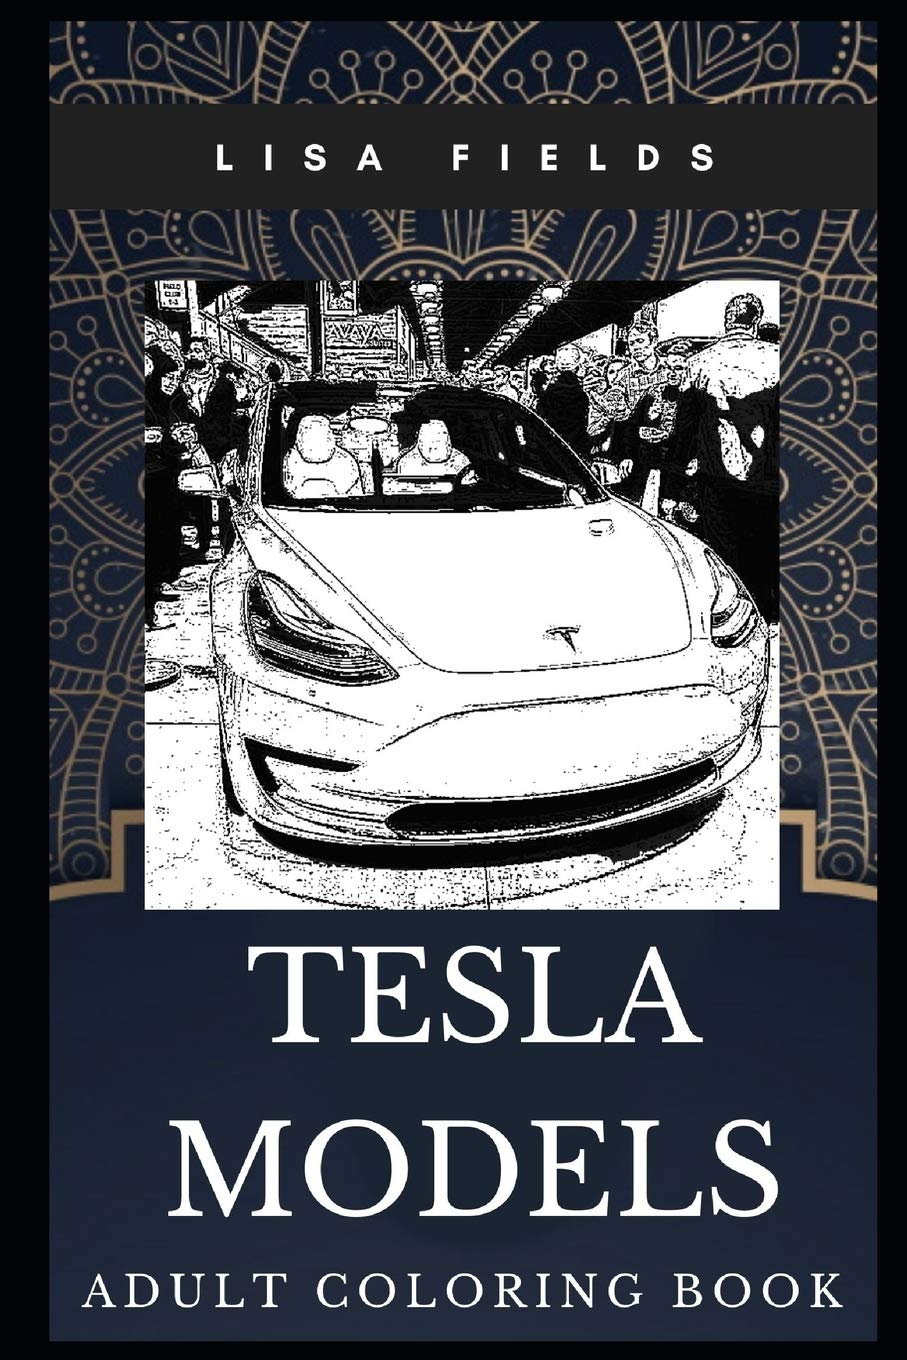 Tesla Models Adult Coloring Book: Electric Cars and Philosophy of Elon Musk Inspired Coloring Book for Adults (Tesla Models Books)